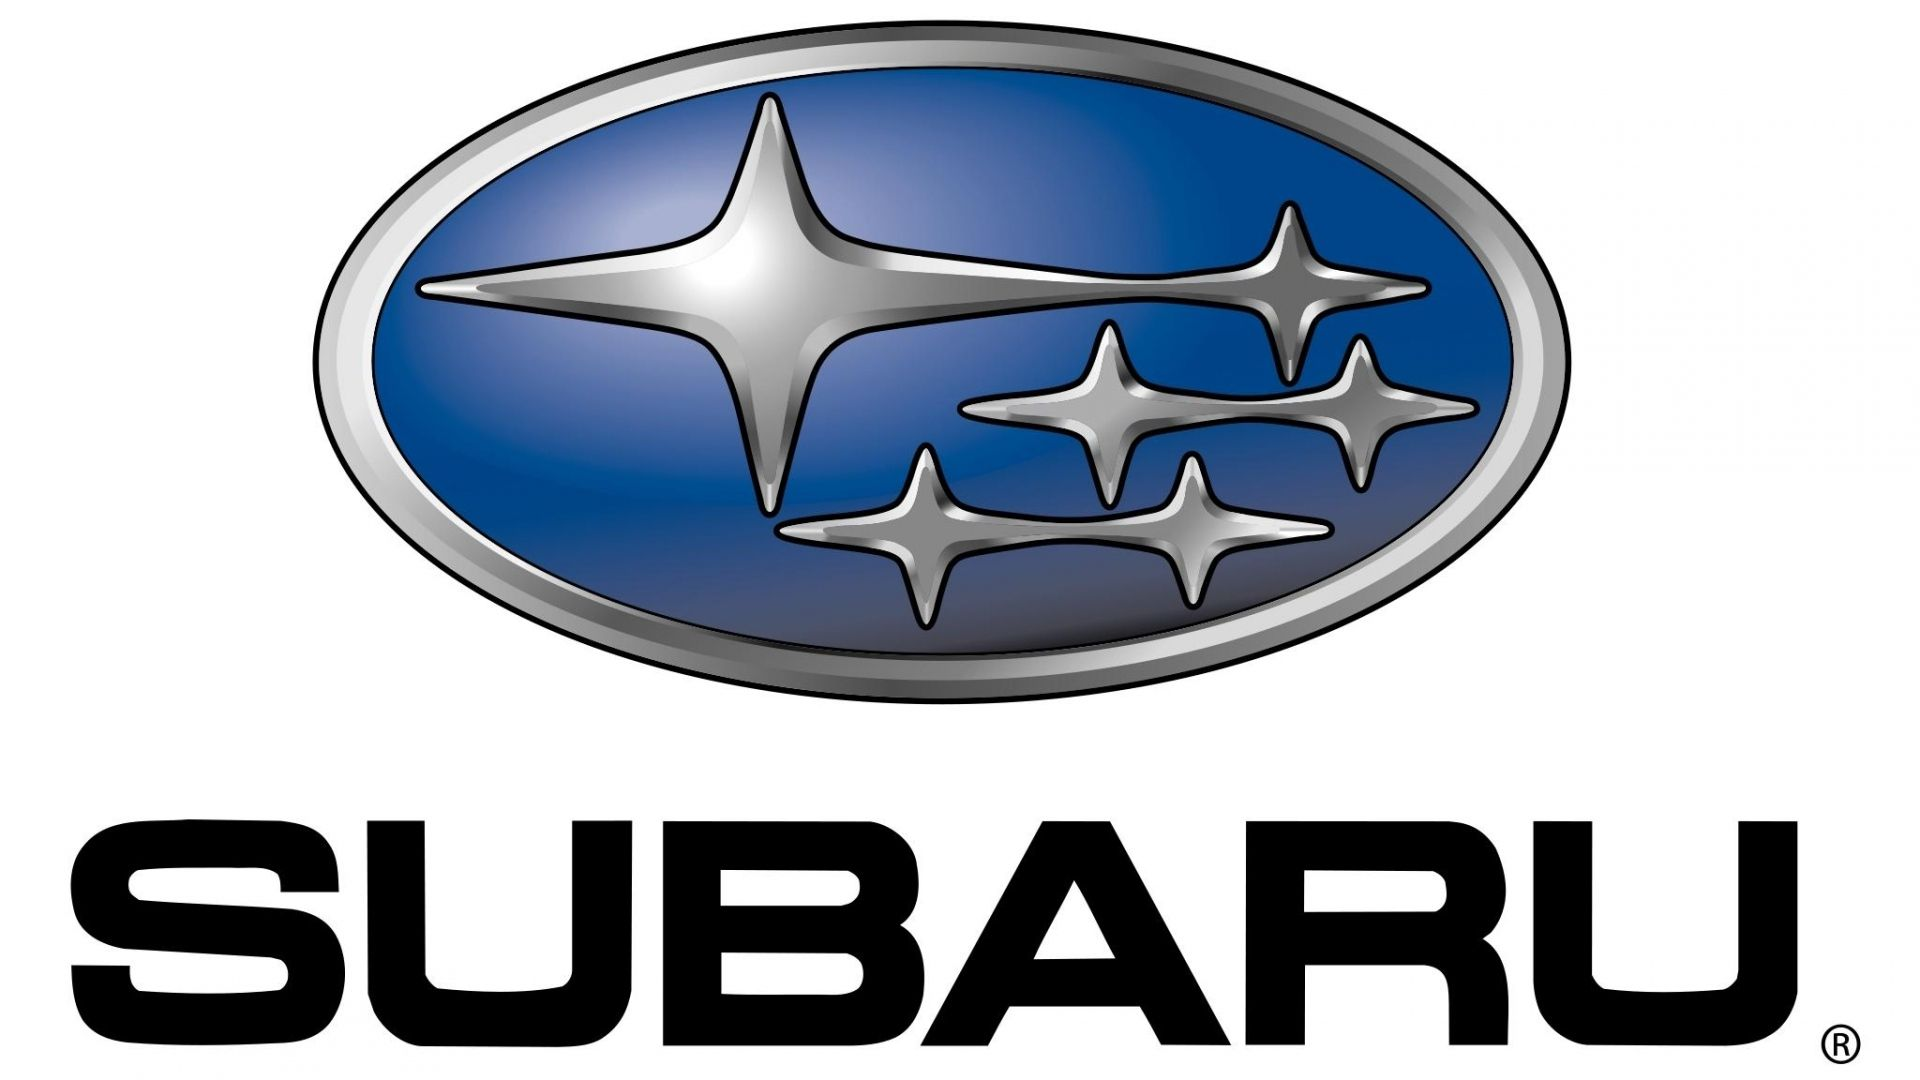 Subaru Service in Raleigh